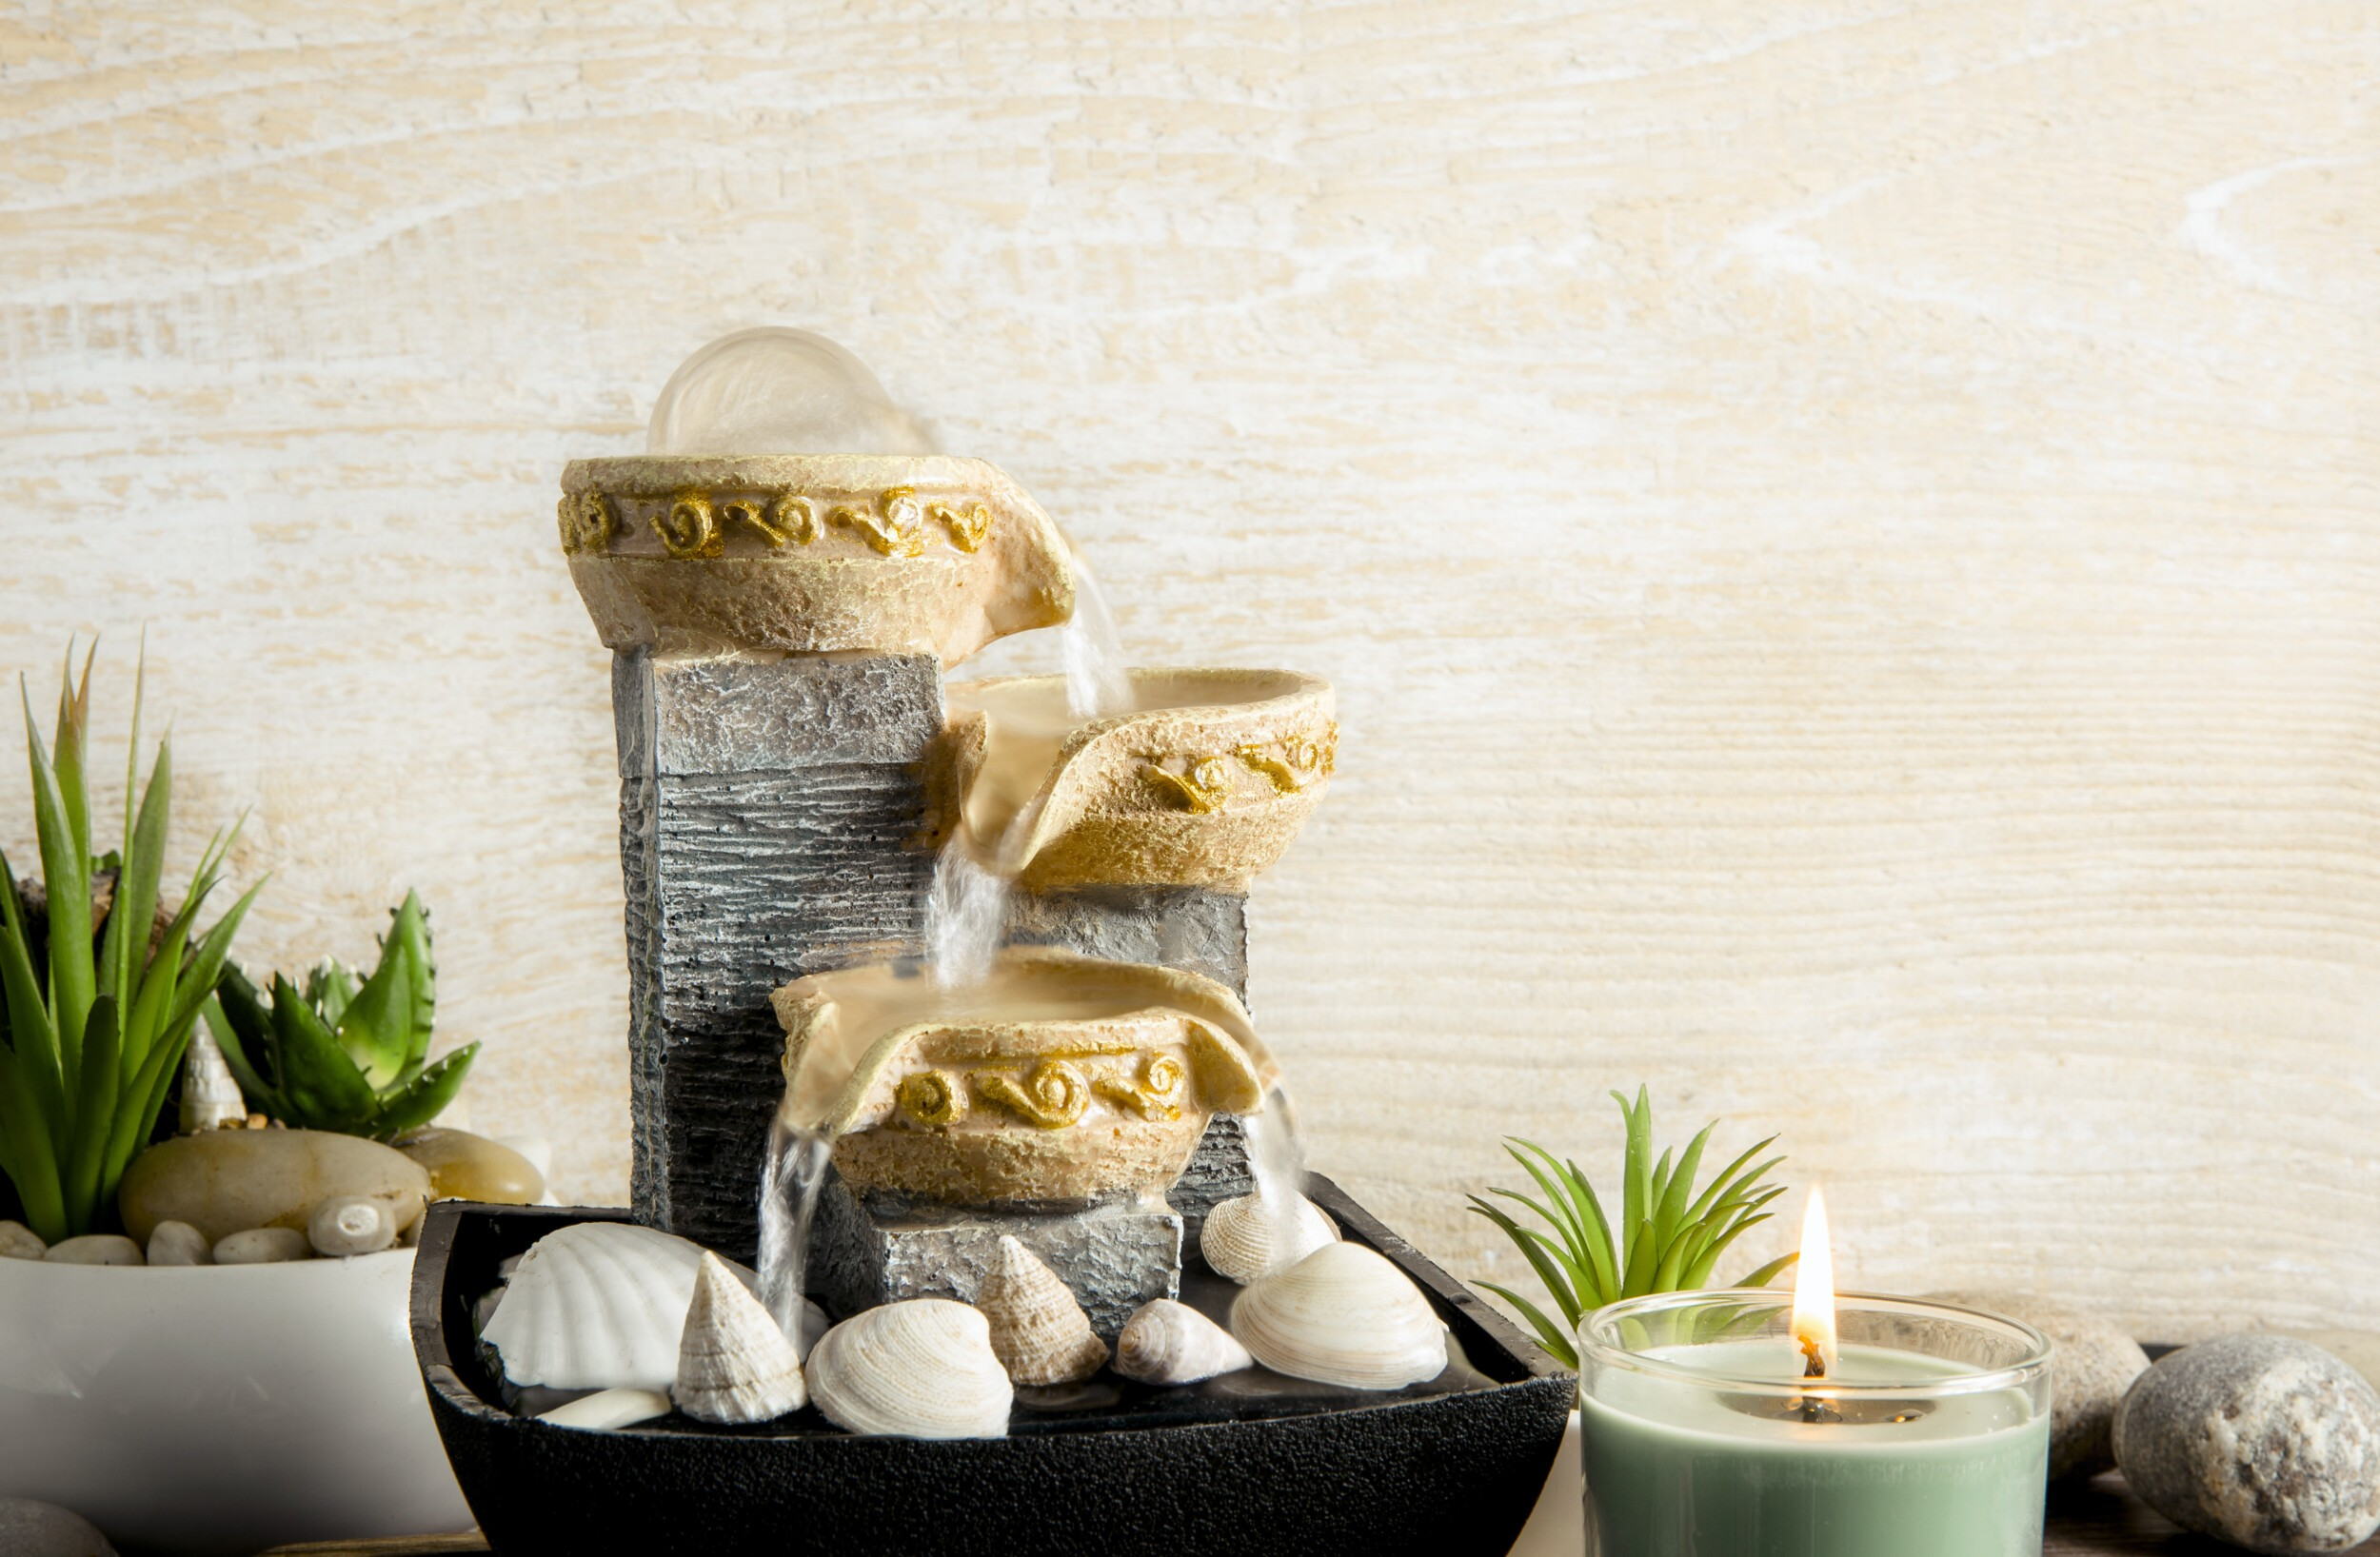 Portable indoor fountain for good Feng Shui